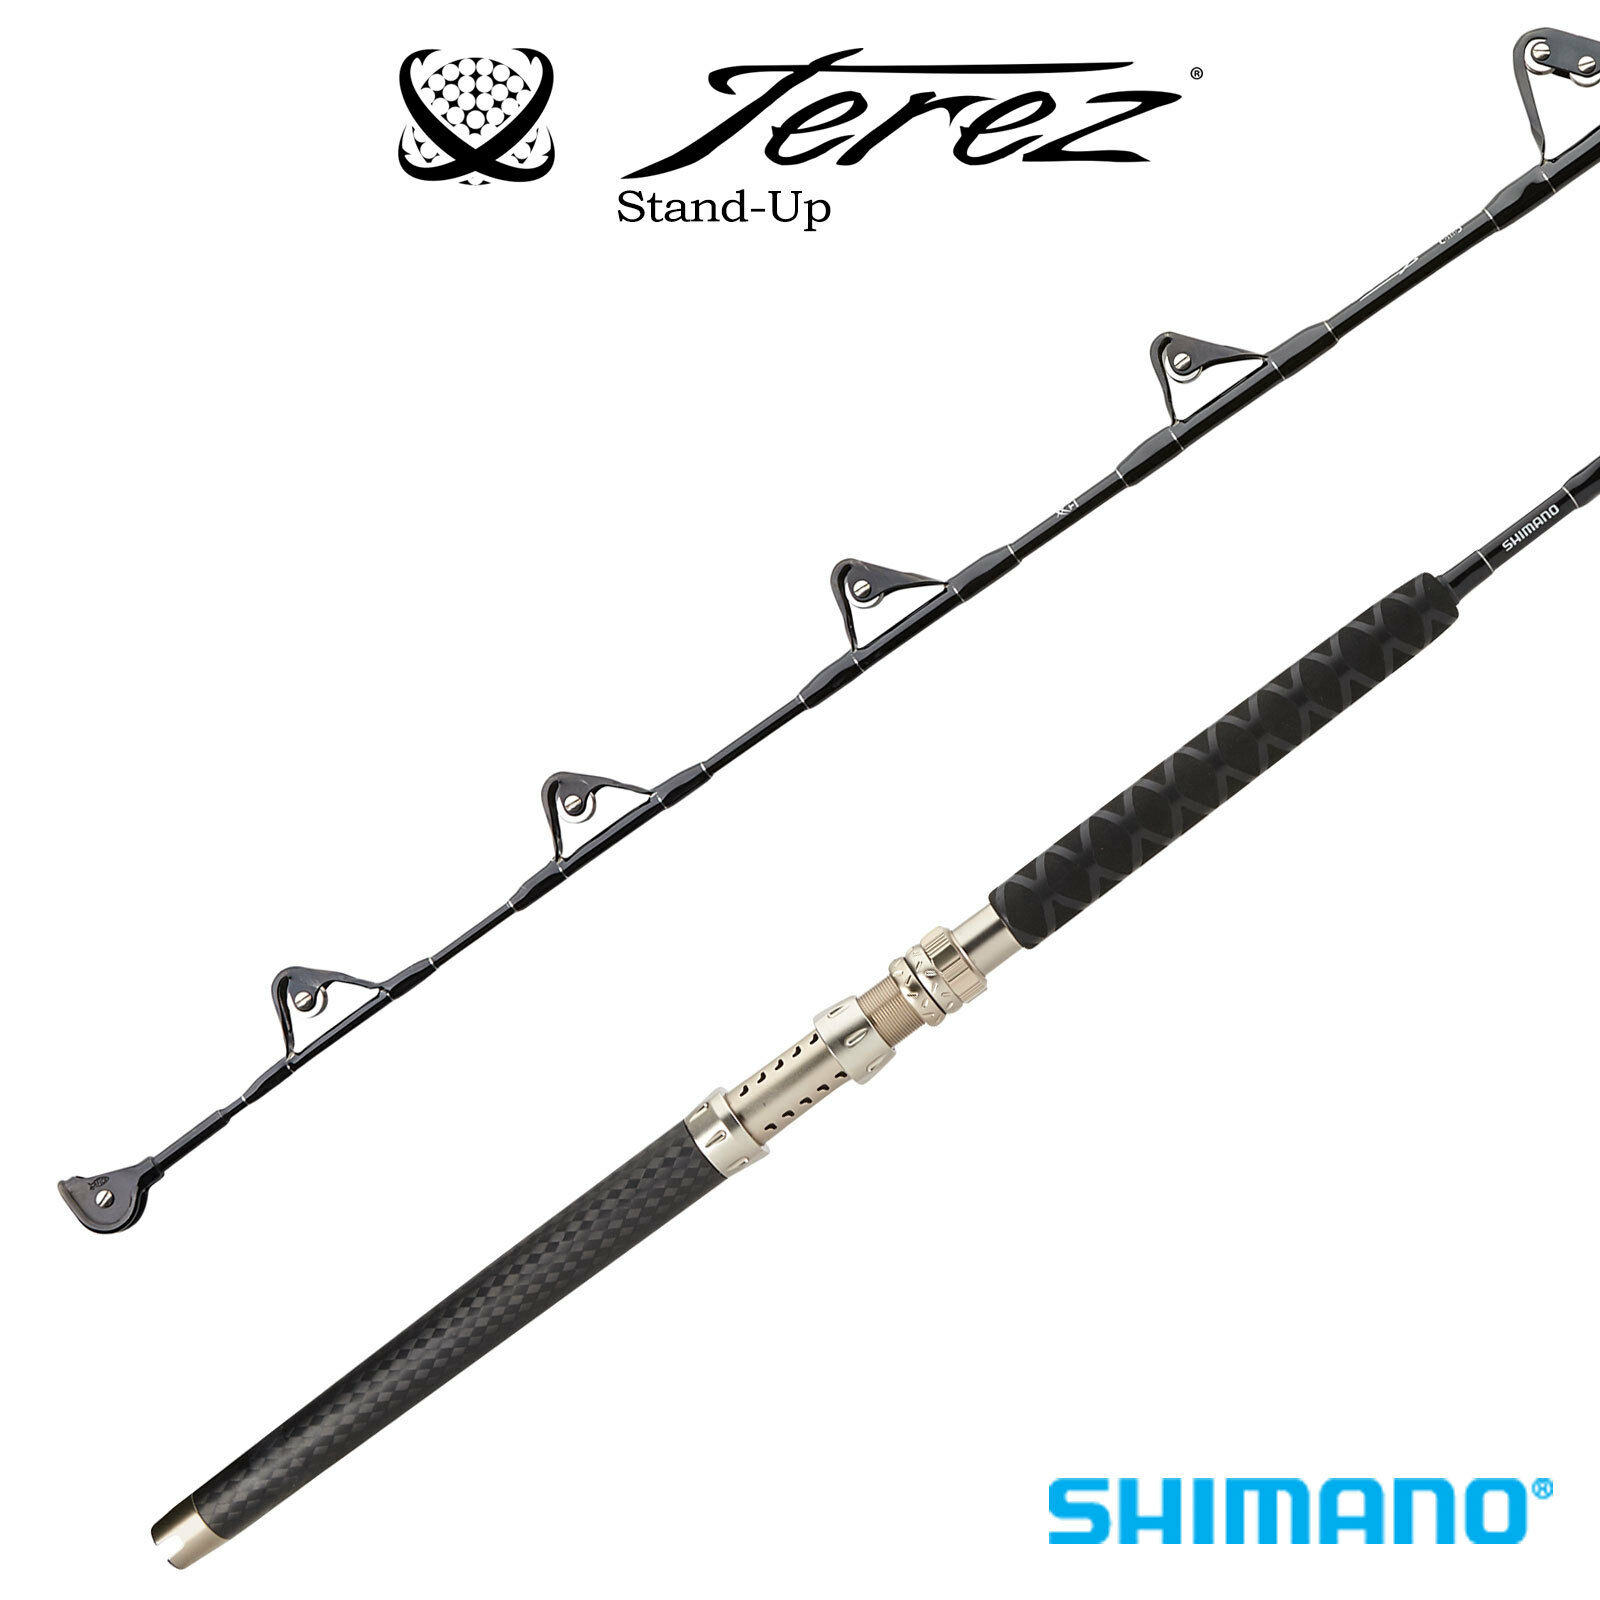 Shimano Terez Stand-Up Straight Butt Trolling 5'6